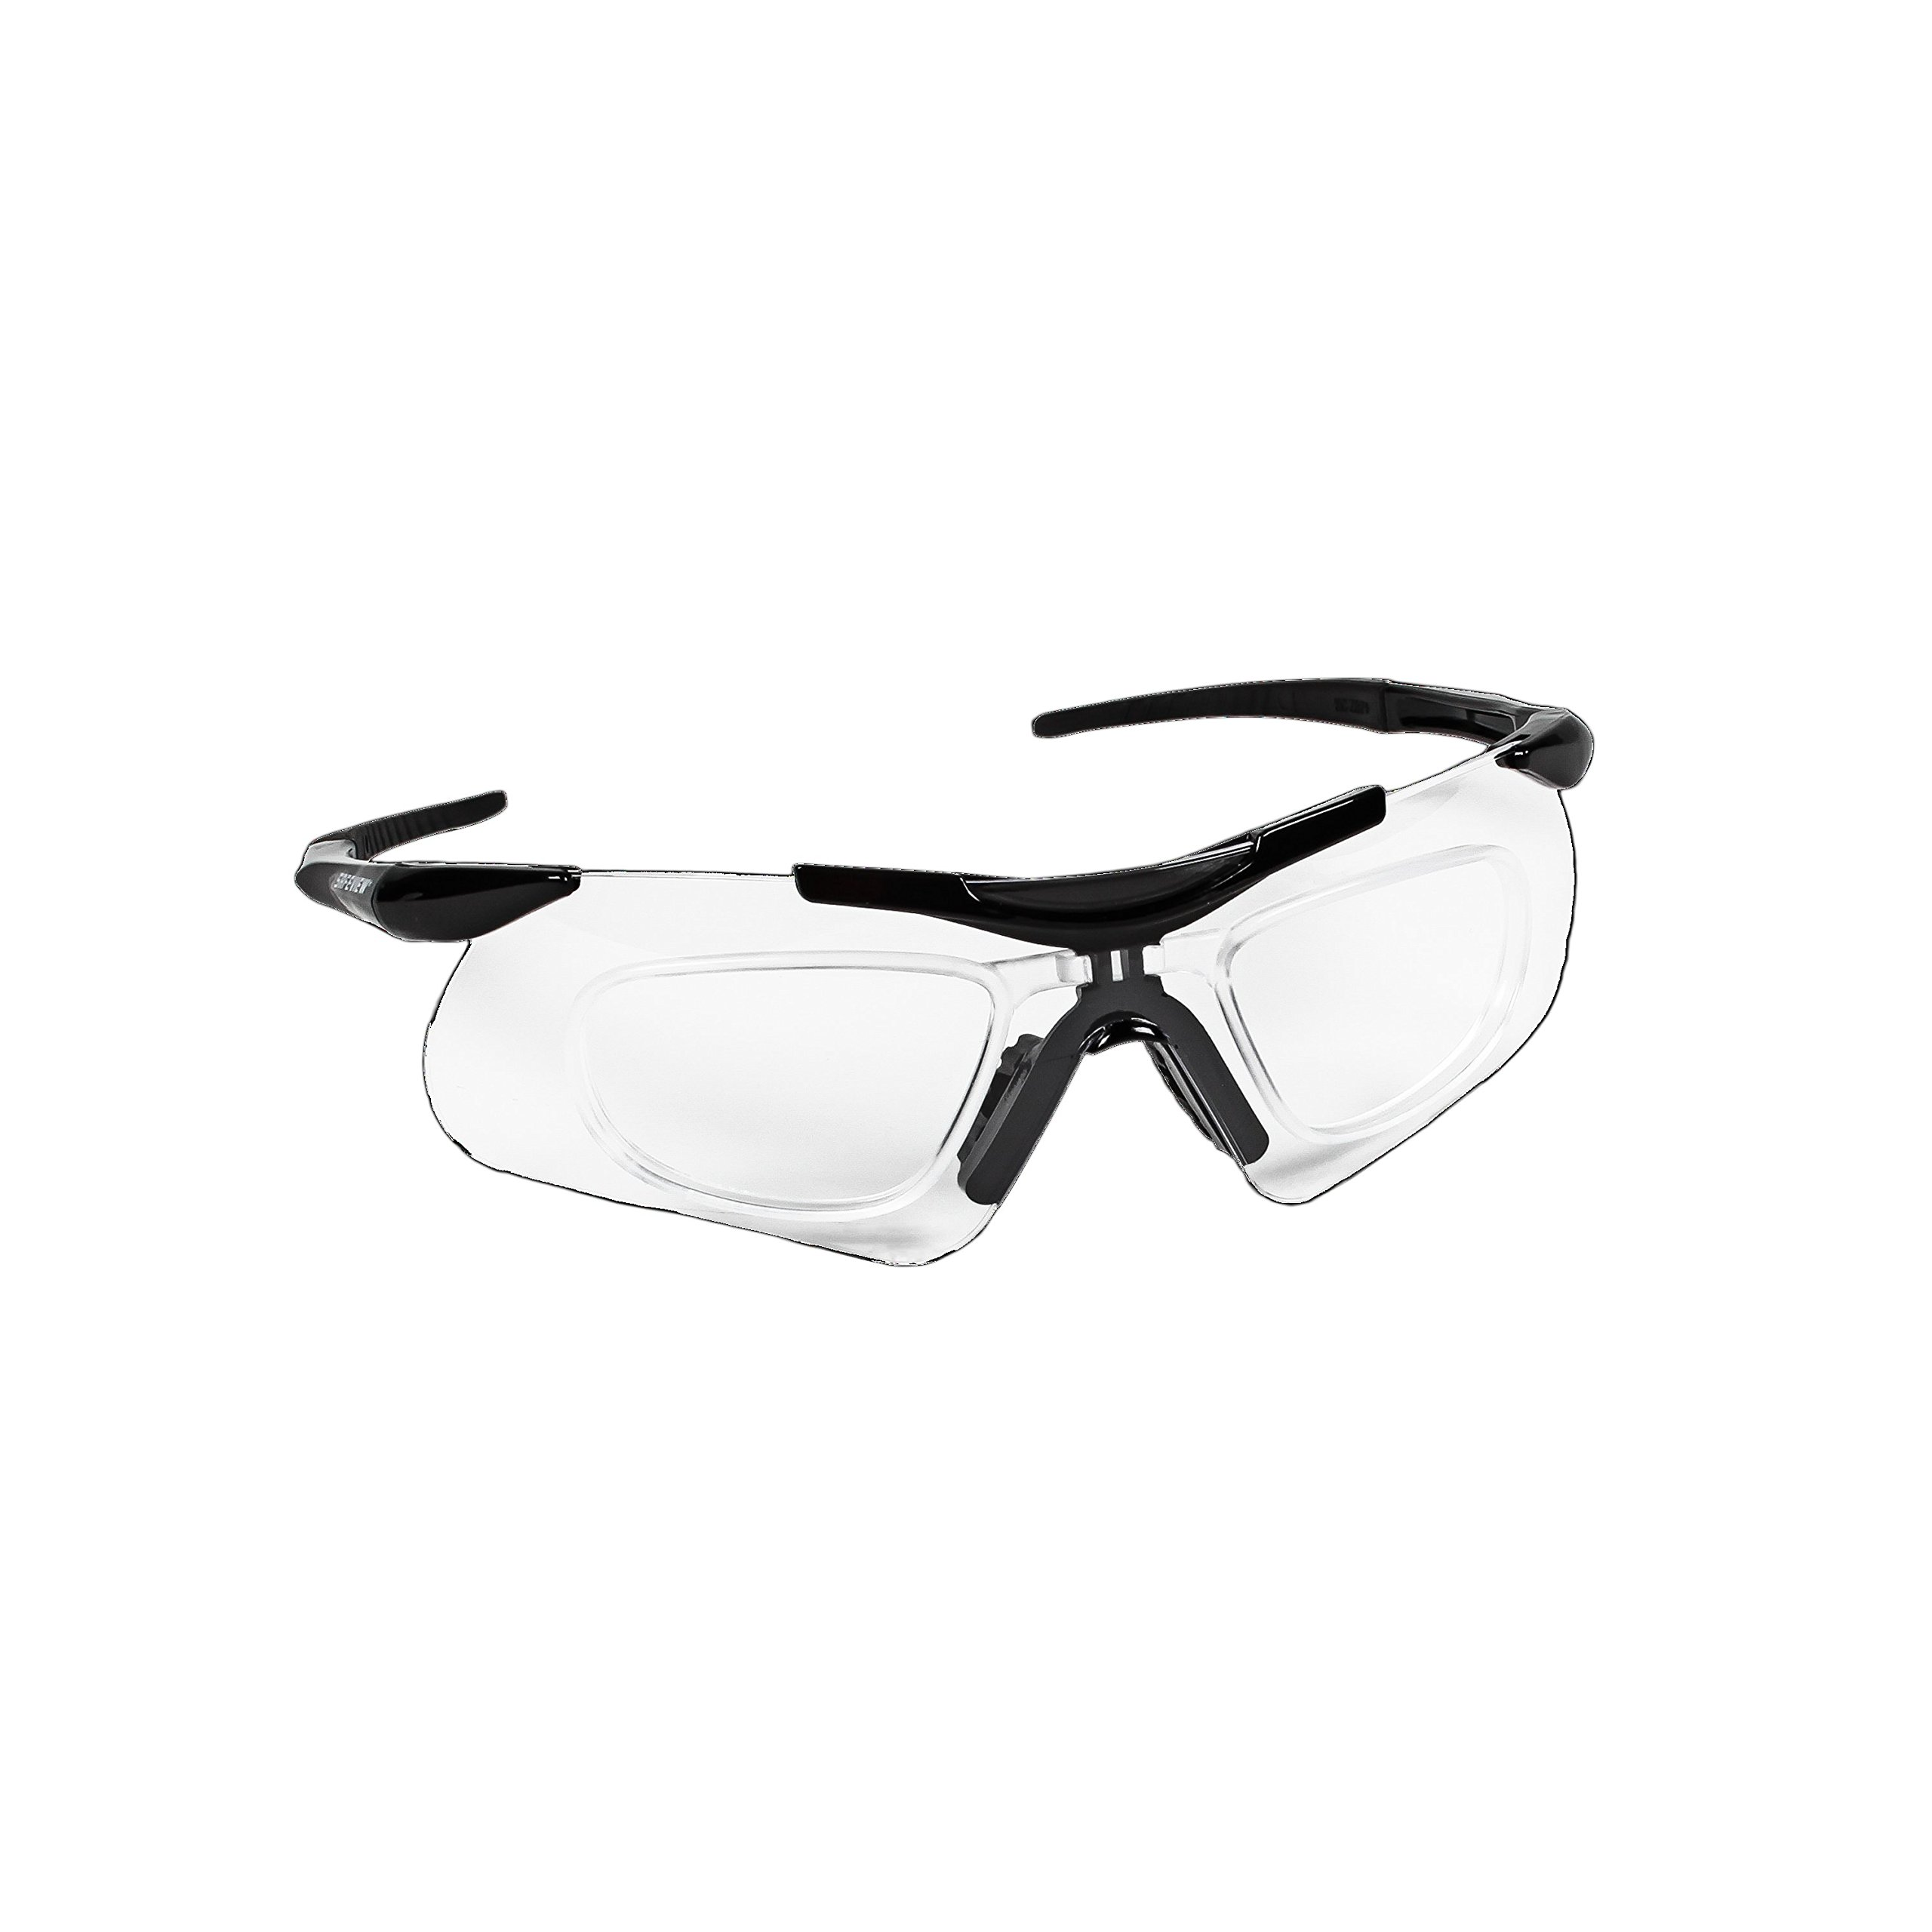 Jackson Safety 38503 V60 Safeview Safety Glasses with RX Inserts, Clear Anti-Fog Lenses with Black Frame (Pack of 12)